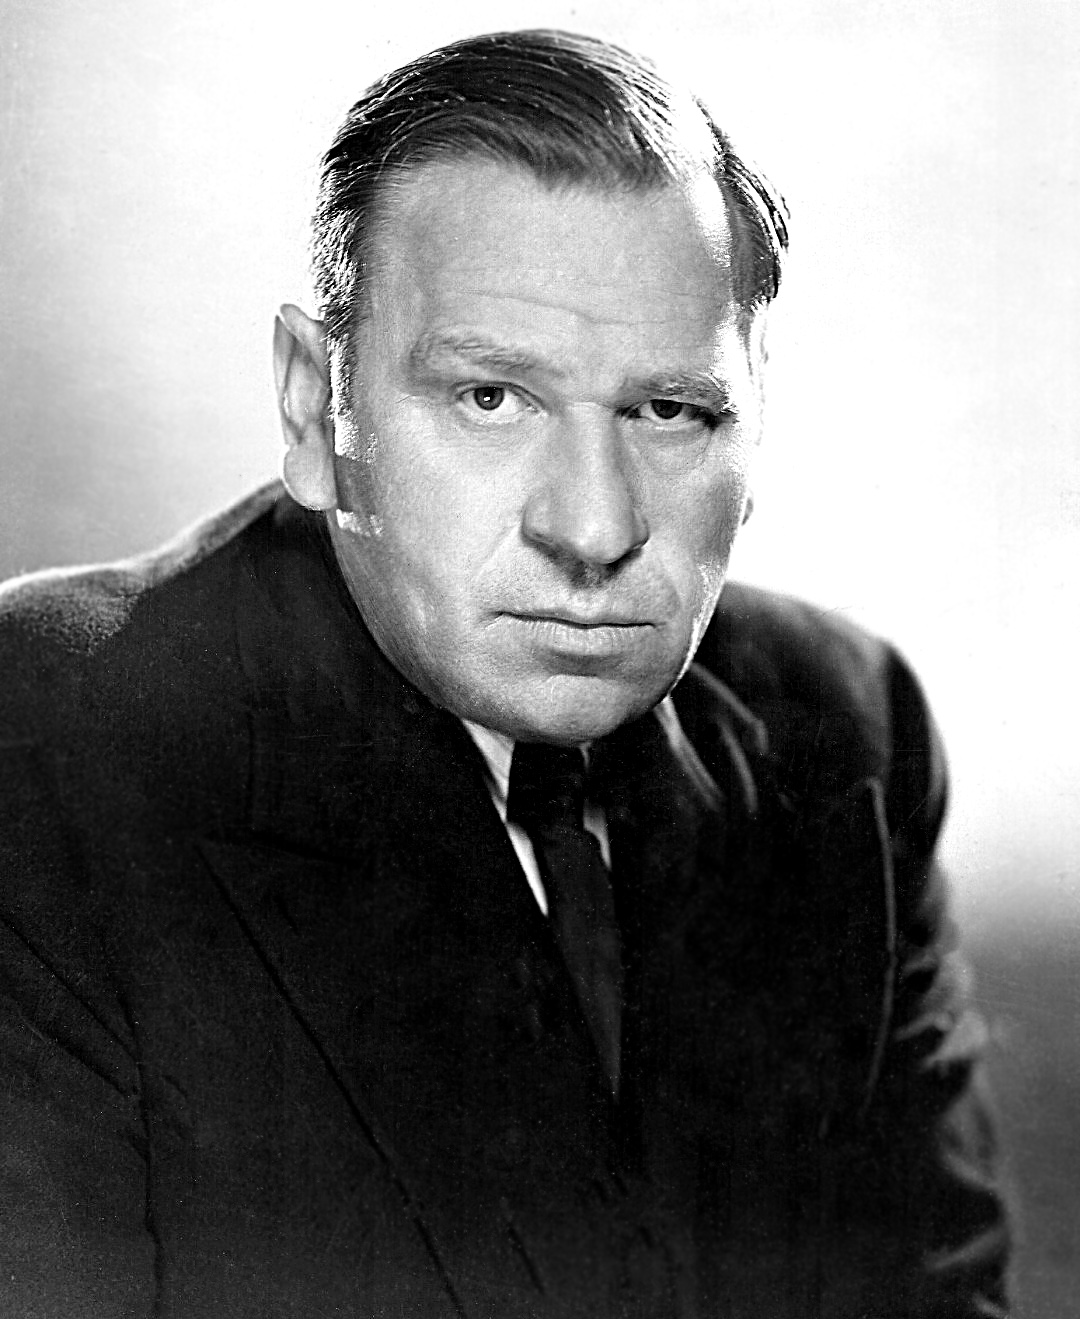 wallace beery jrwallace beery jr, wallace beery shirt, wallace beery movies, wallace beery actor, wallace beery family tree, wallace beery al capone, wallace beery imdb, wallace beery bio, wallace beery brother, wallace beery movies youtube, wallace beery house, wallace beery wrestling, wallace beery youtube, wallace beery westerns, wallace beery photos, wallace beery death, wallace beery images, wallace beery net worth, wallace beery the champ, wallace beery boardwalk empire